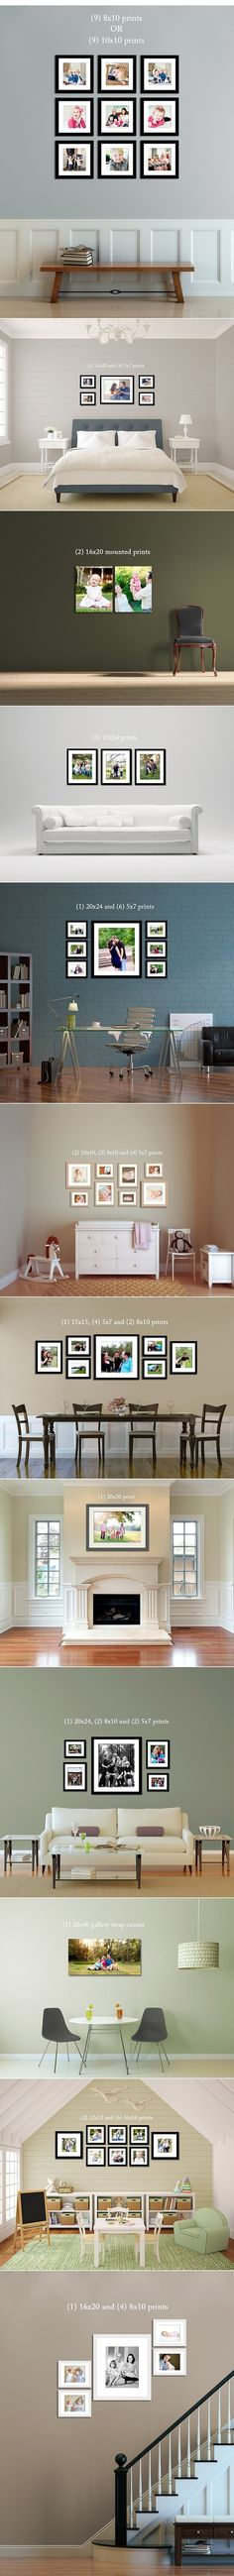 Picture hanging ideas. Can easily combine this into your space and visualize your photos before you order!